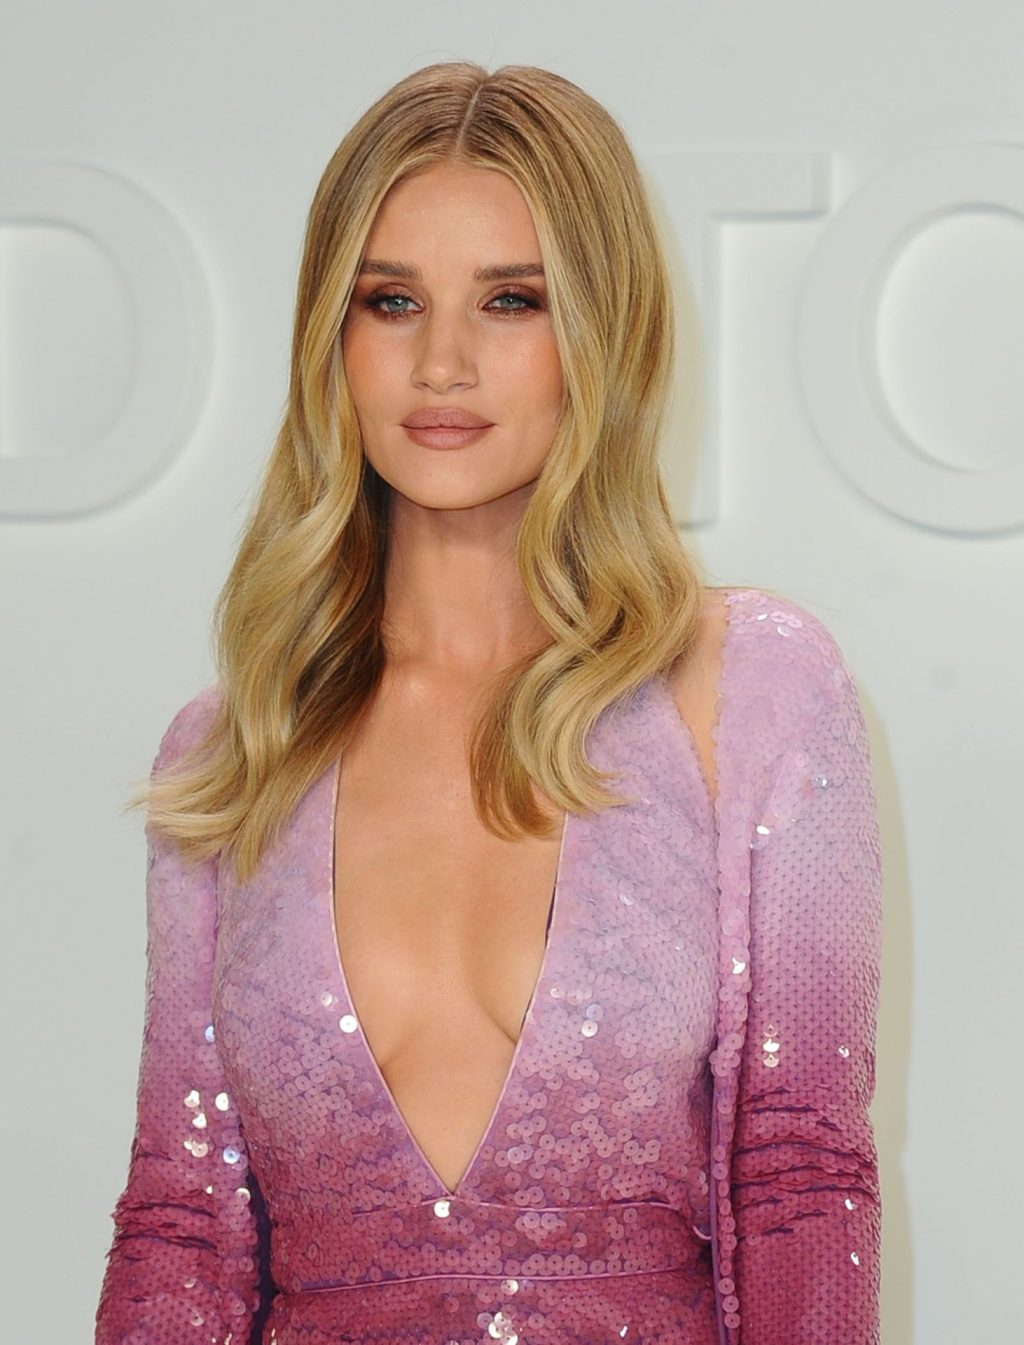 Rosie Huntington Whiteley Sexy The Fappening Blog 15 1024x1345 - Rosie Huntington-Whiteley Shows Her Cleavage at the Tom Ford Fashion Show (115 Photos)